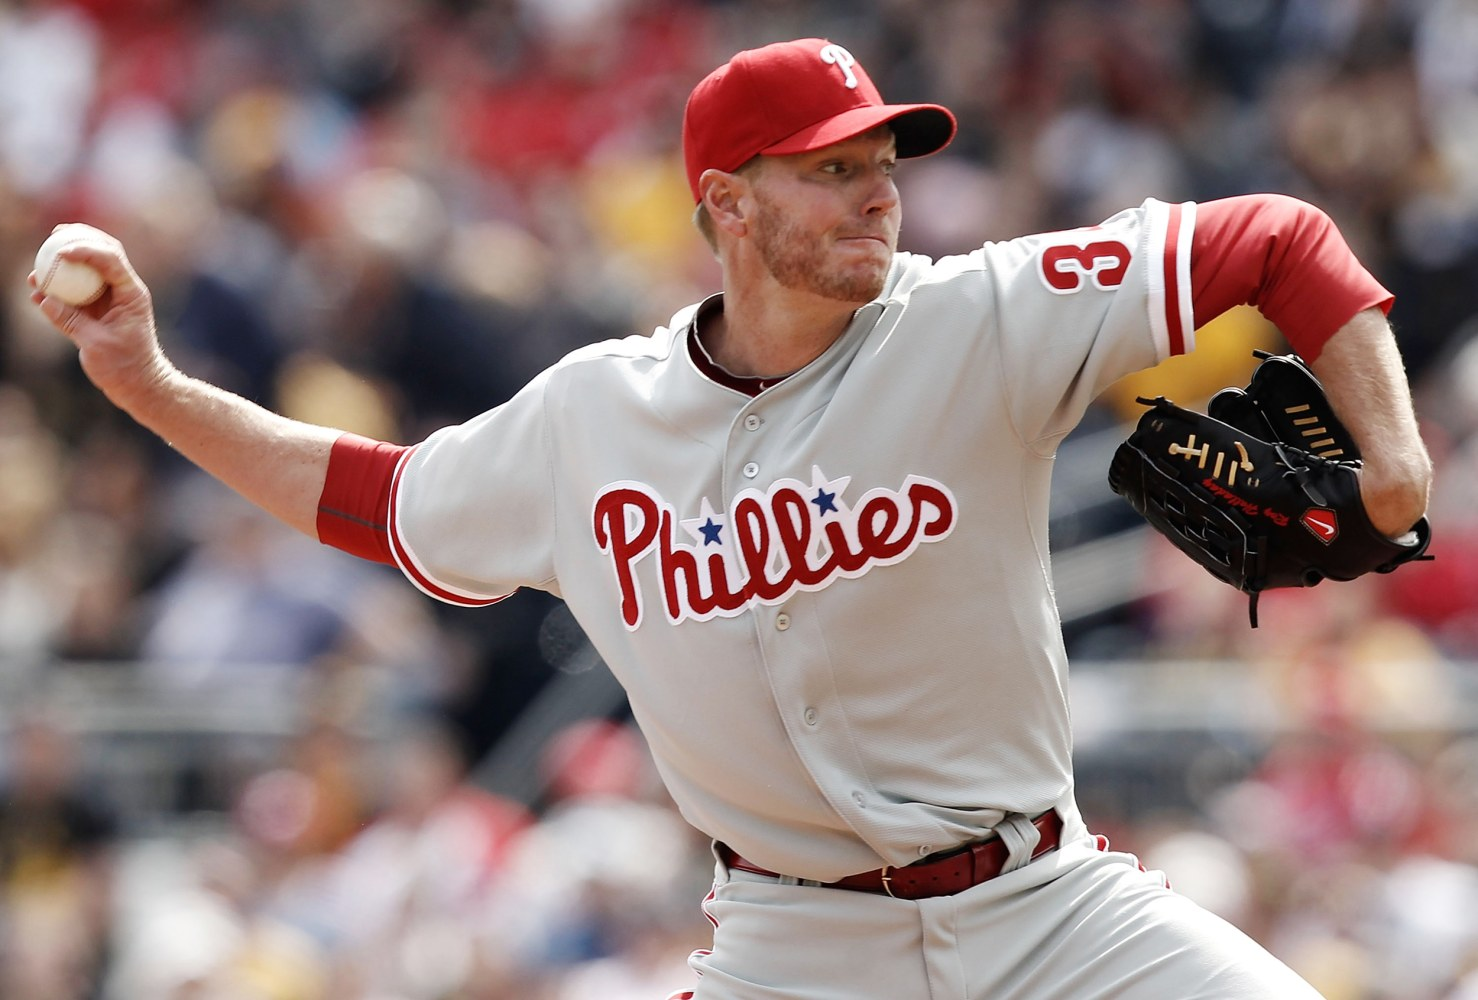 Ex-Phillies ace Roy Halladay dies in plane crash